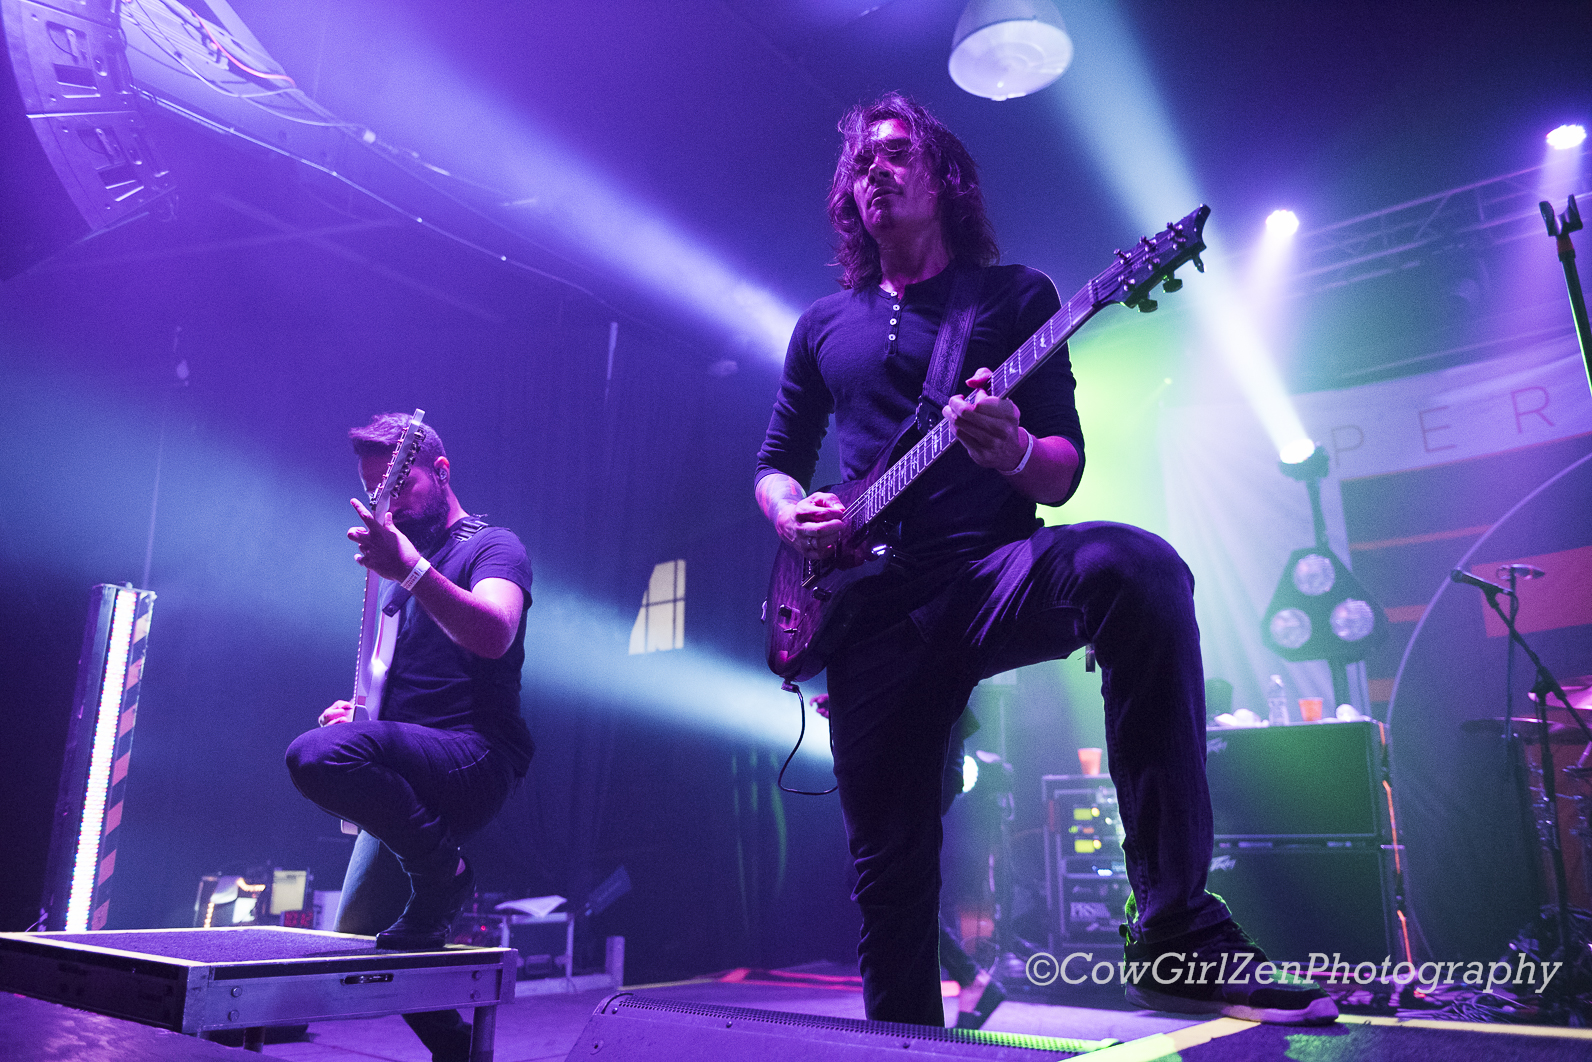 Band Photoshoots & Live Music Photography | Alive Network |Live Concert Photography